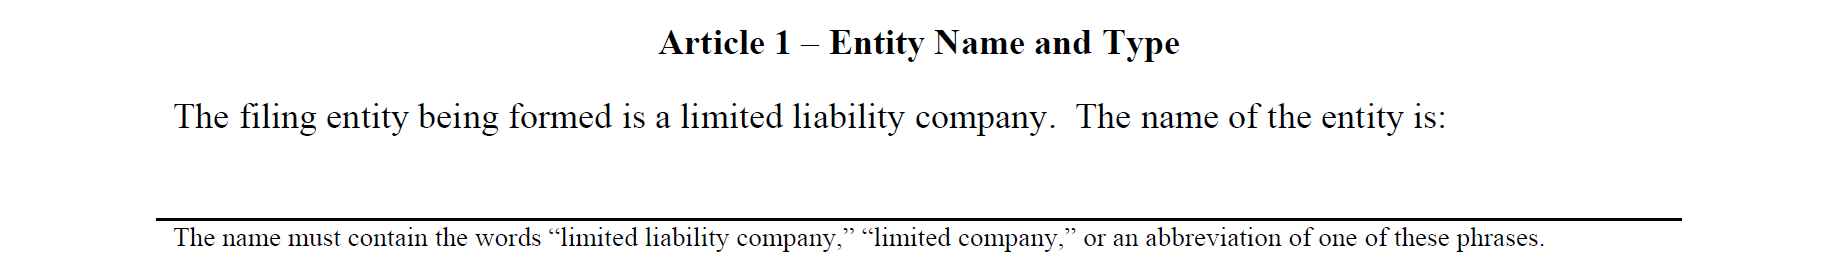 certificate-of-formation-name